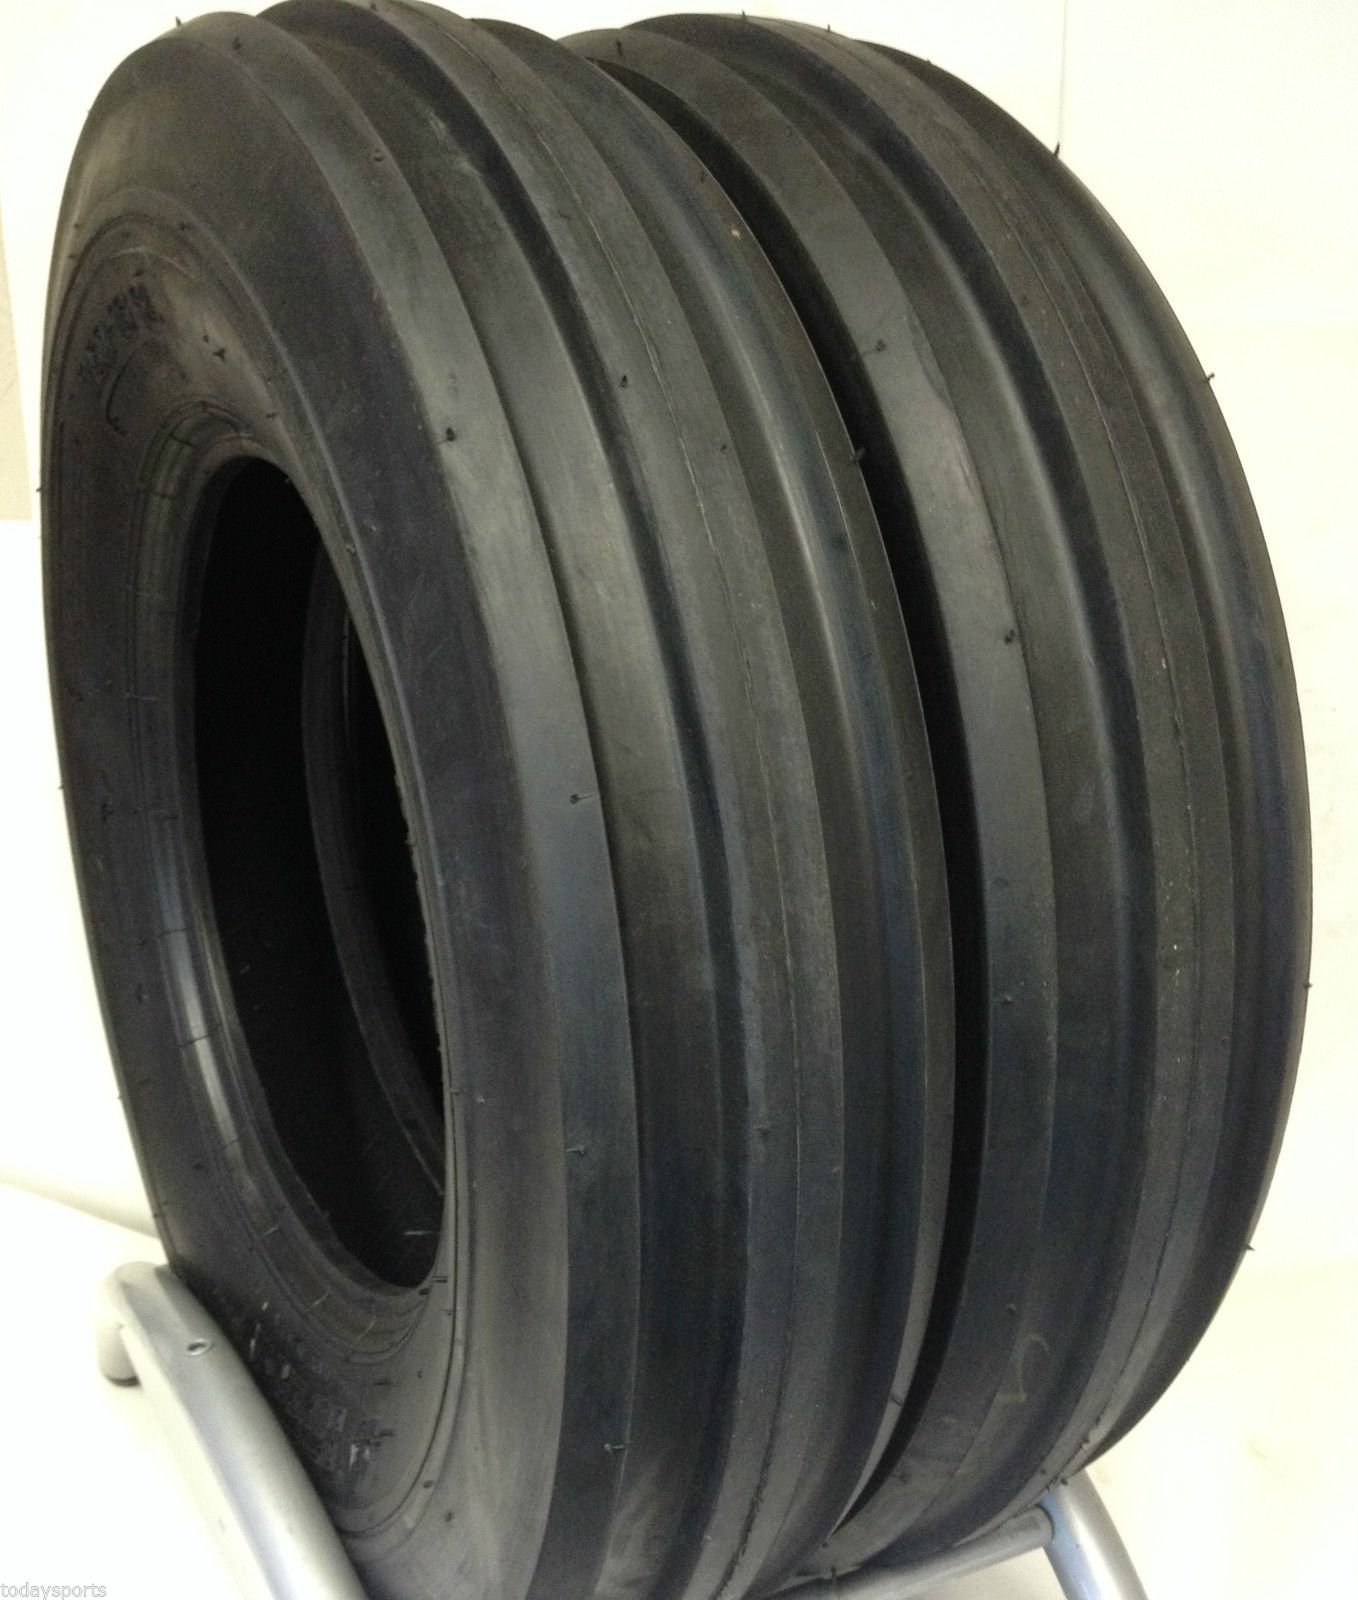 Set of Two 7.50-16 Samson Tri Rib F2 Front Tractor Tires 8 Ply Rated